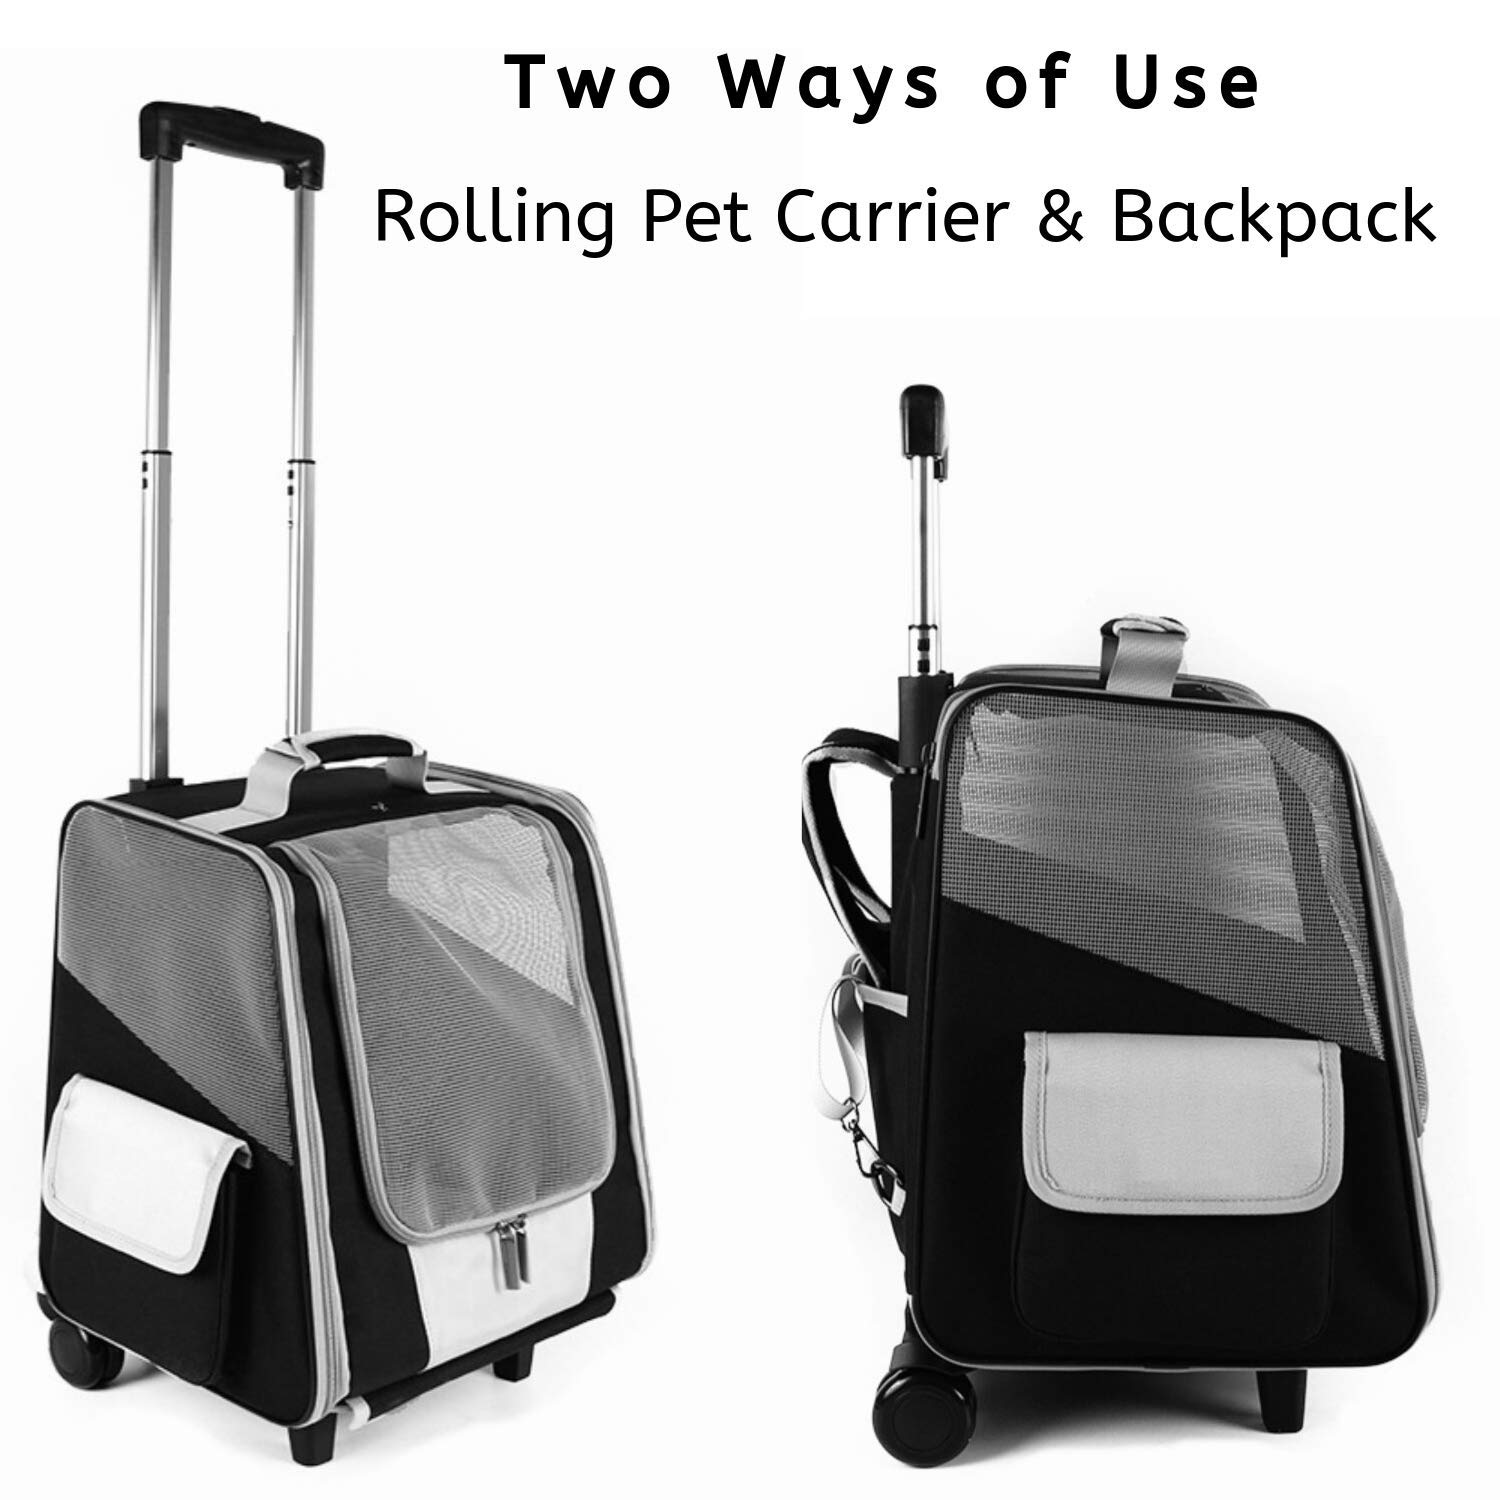 Lollimeow Pet Carrier Backpack for Dogs and Cats,Puppies,Fully Ventilated Mesh,Airline Approved,Designed for Travel, Hiking, Walking Outdoor Use